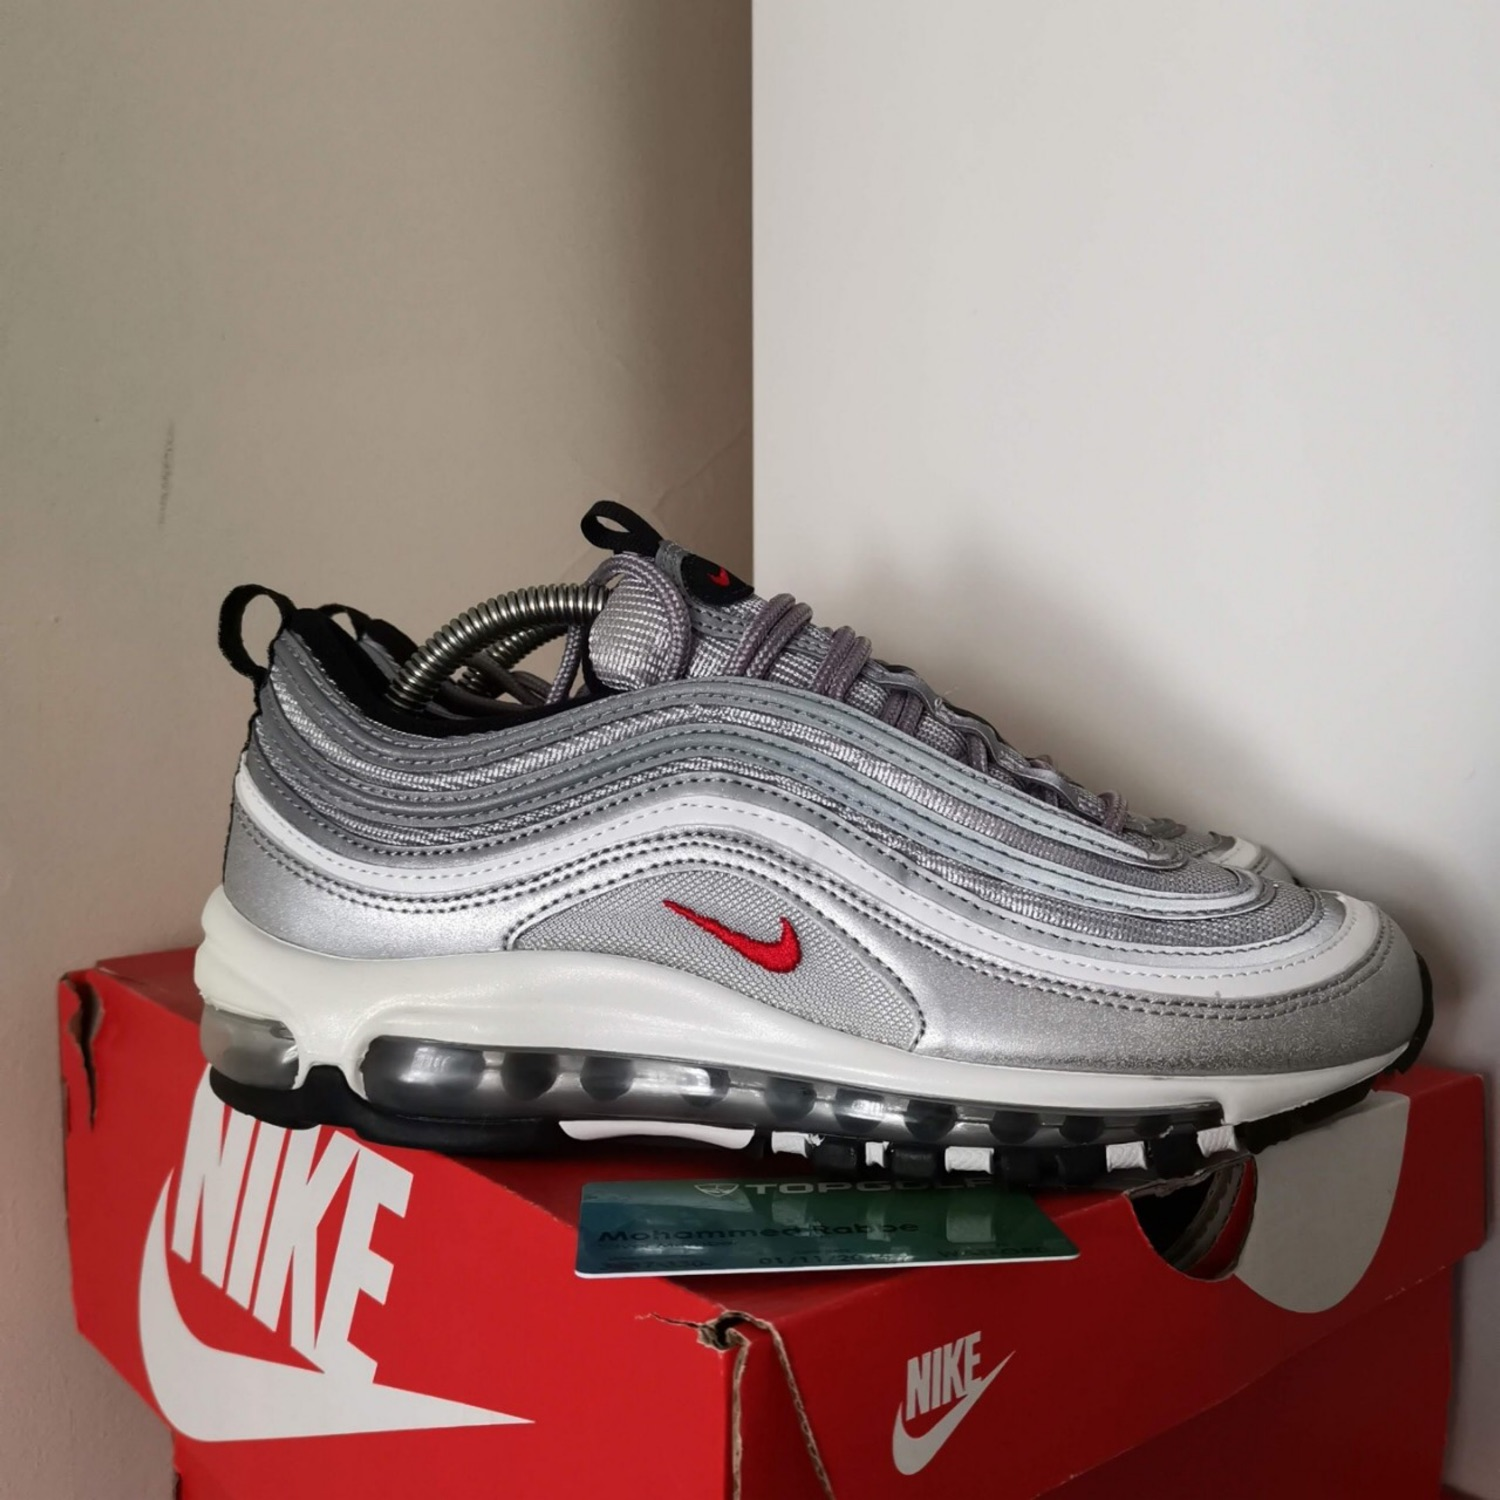 Nike Air Max Plus QS Silver Bullet 903827 001 Metallic